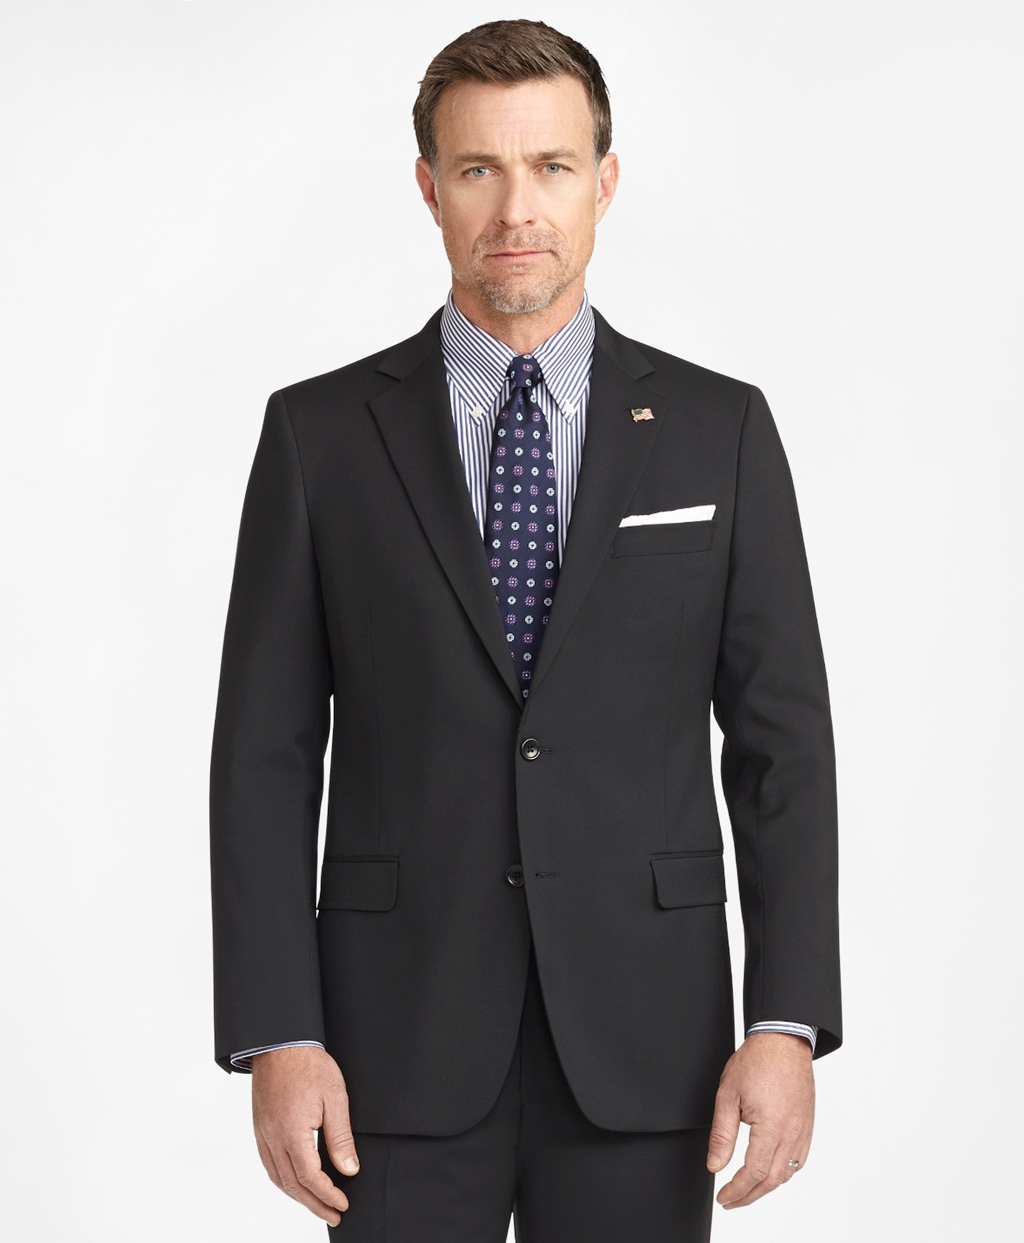 Men's Suits, 3 Piece Suits, and Suit Pants | Brooks Brothers